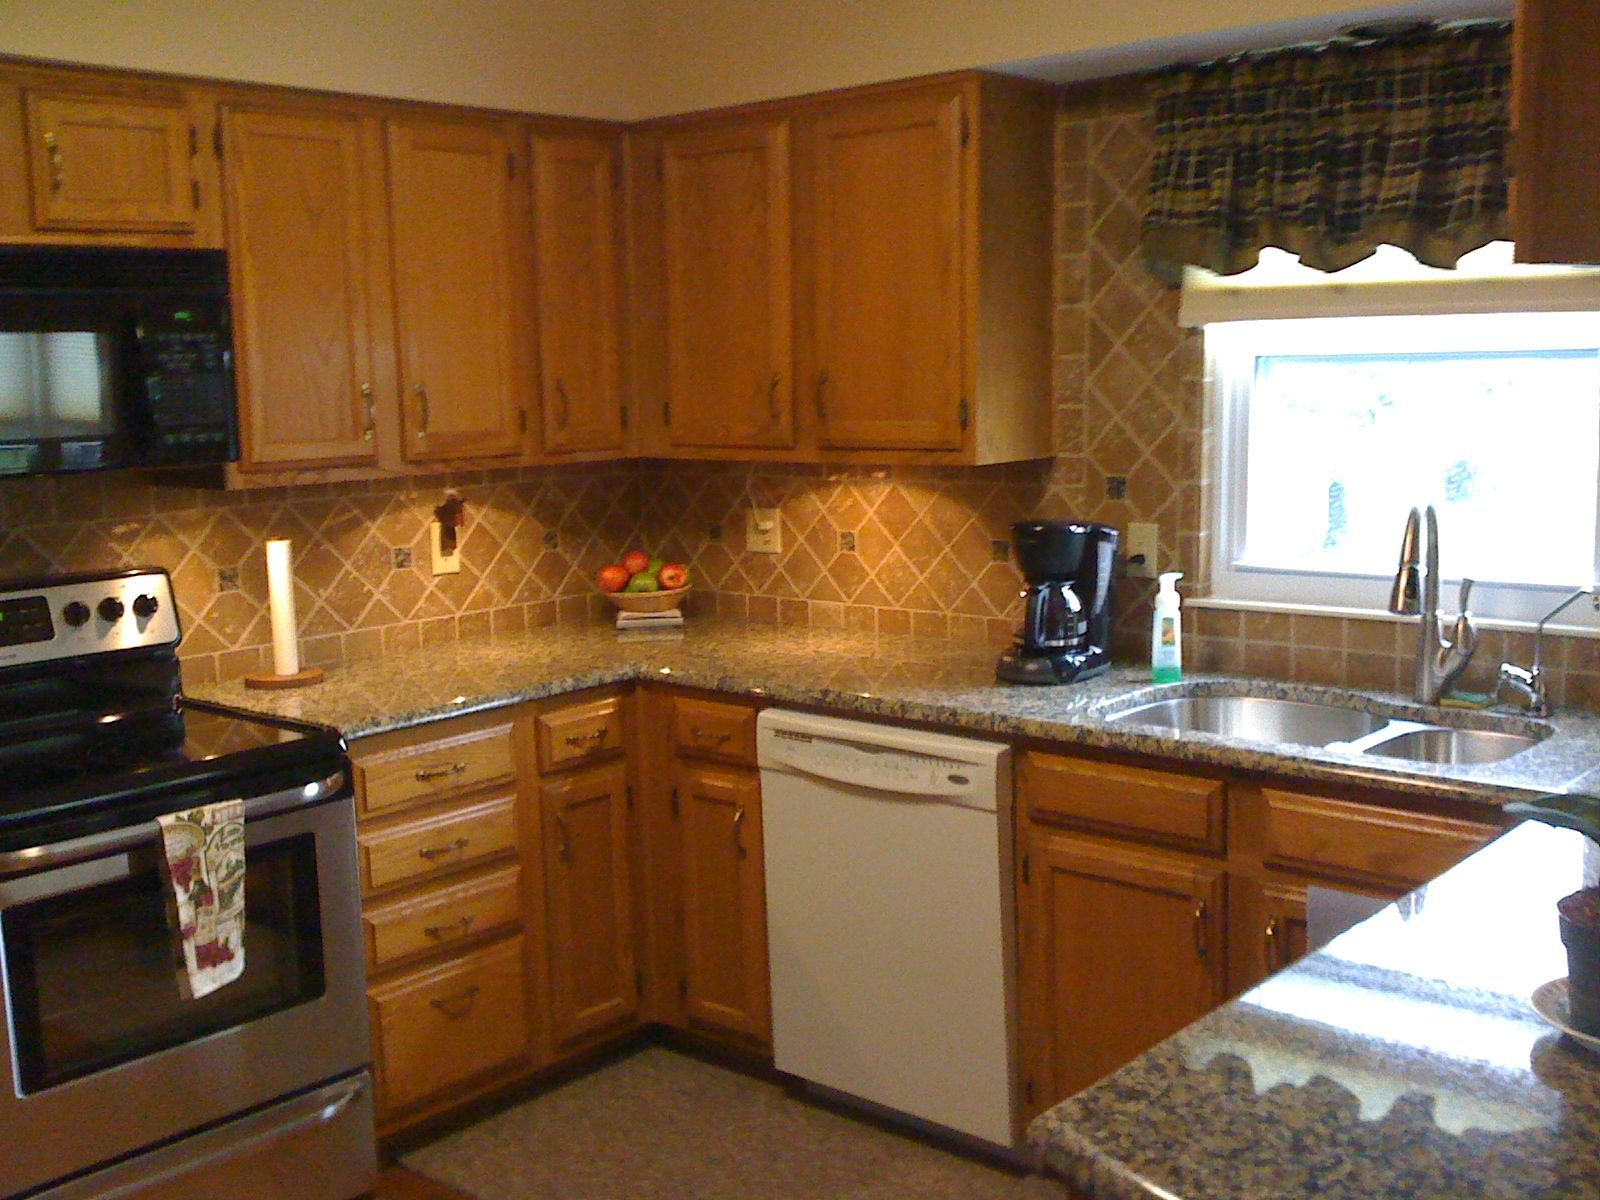 Kitchen Counter Backsplash Ideas Pictures Amarello Boreal Granite Countertop Pictures Yahoo Search